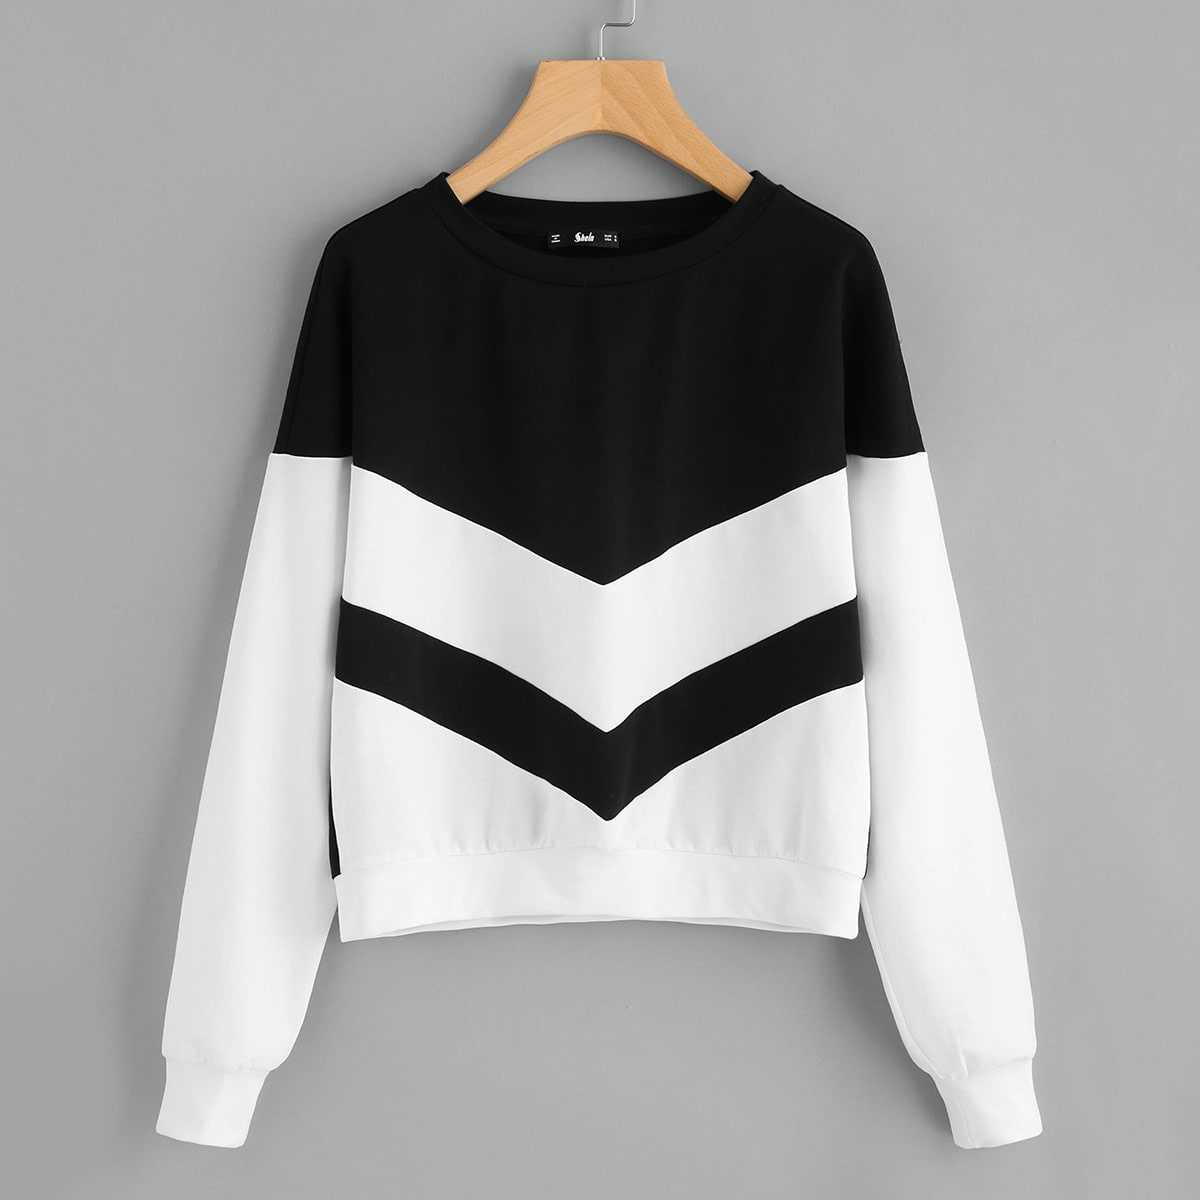 Two Tone Chevron Pullover in Black and White by ROMWE on GOOFASH